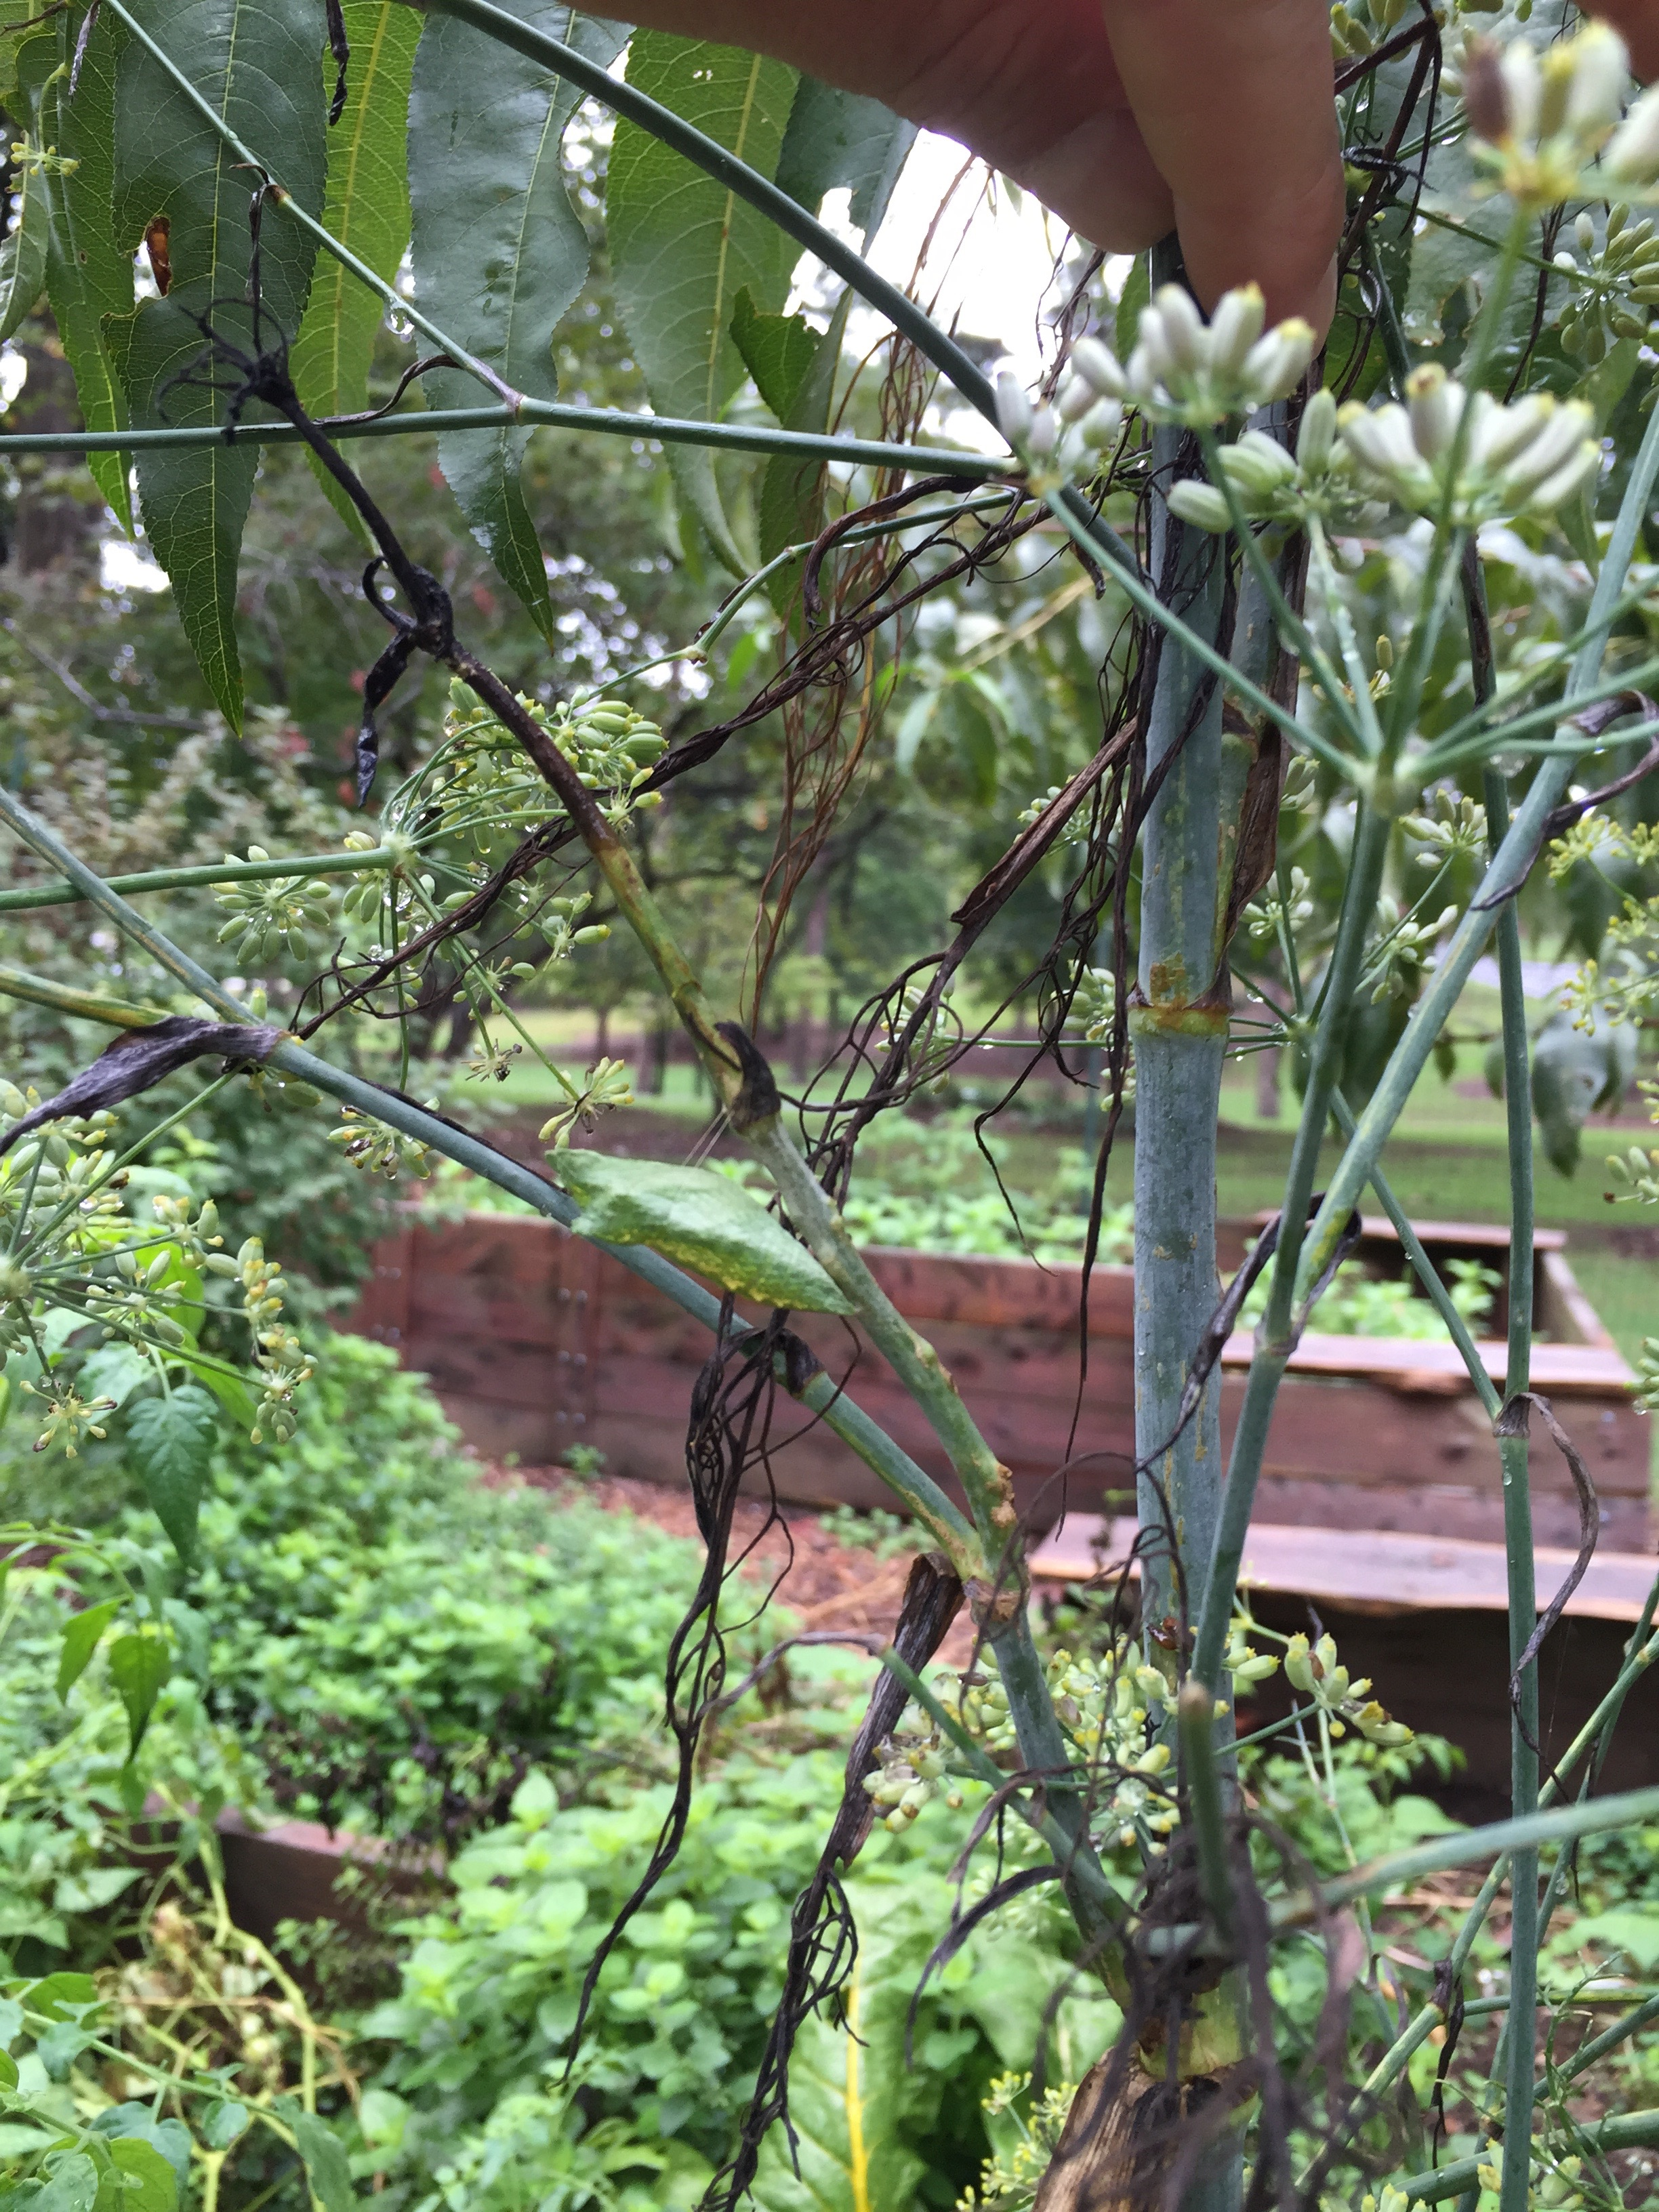 Tiger Swallow Tail chrysalis on fennel. Caterpillars are also fun to have in the garden because you can observe their growth process and watch as they become butterflies.